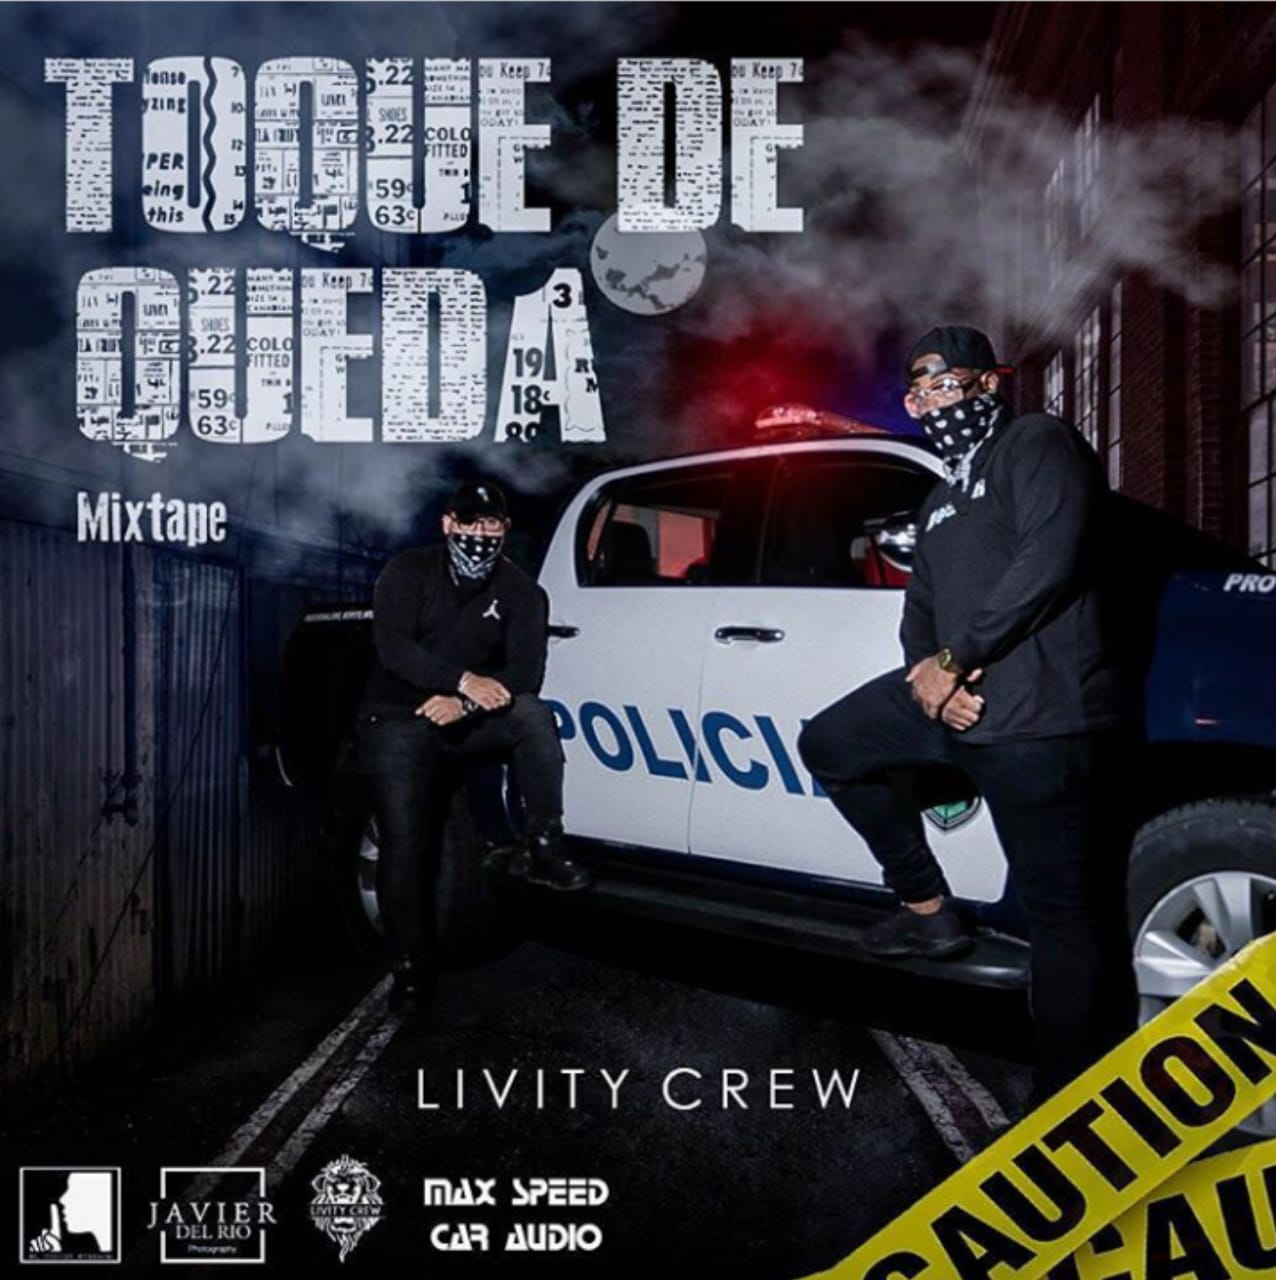 LivityCrew - Toque De Queda MixTape.mp3